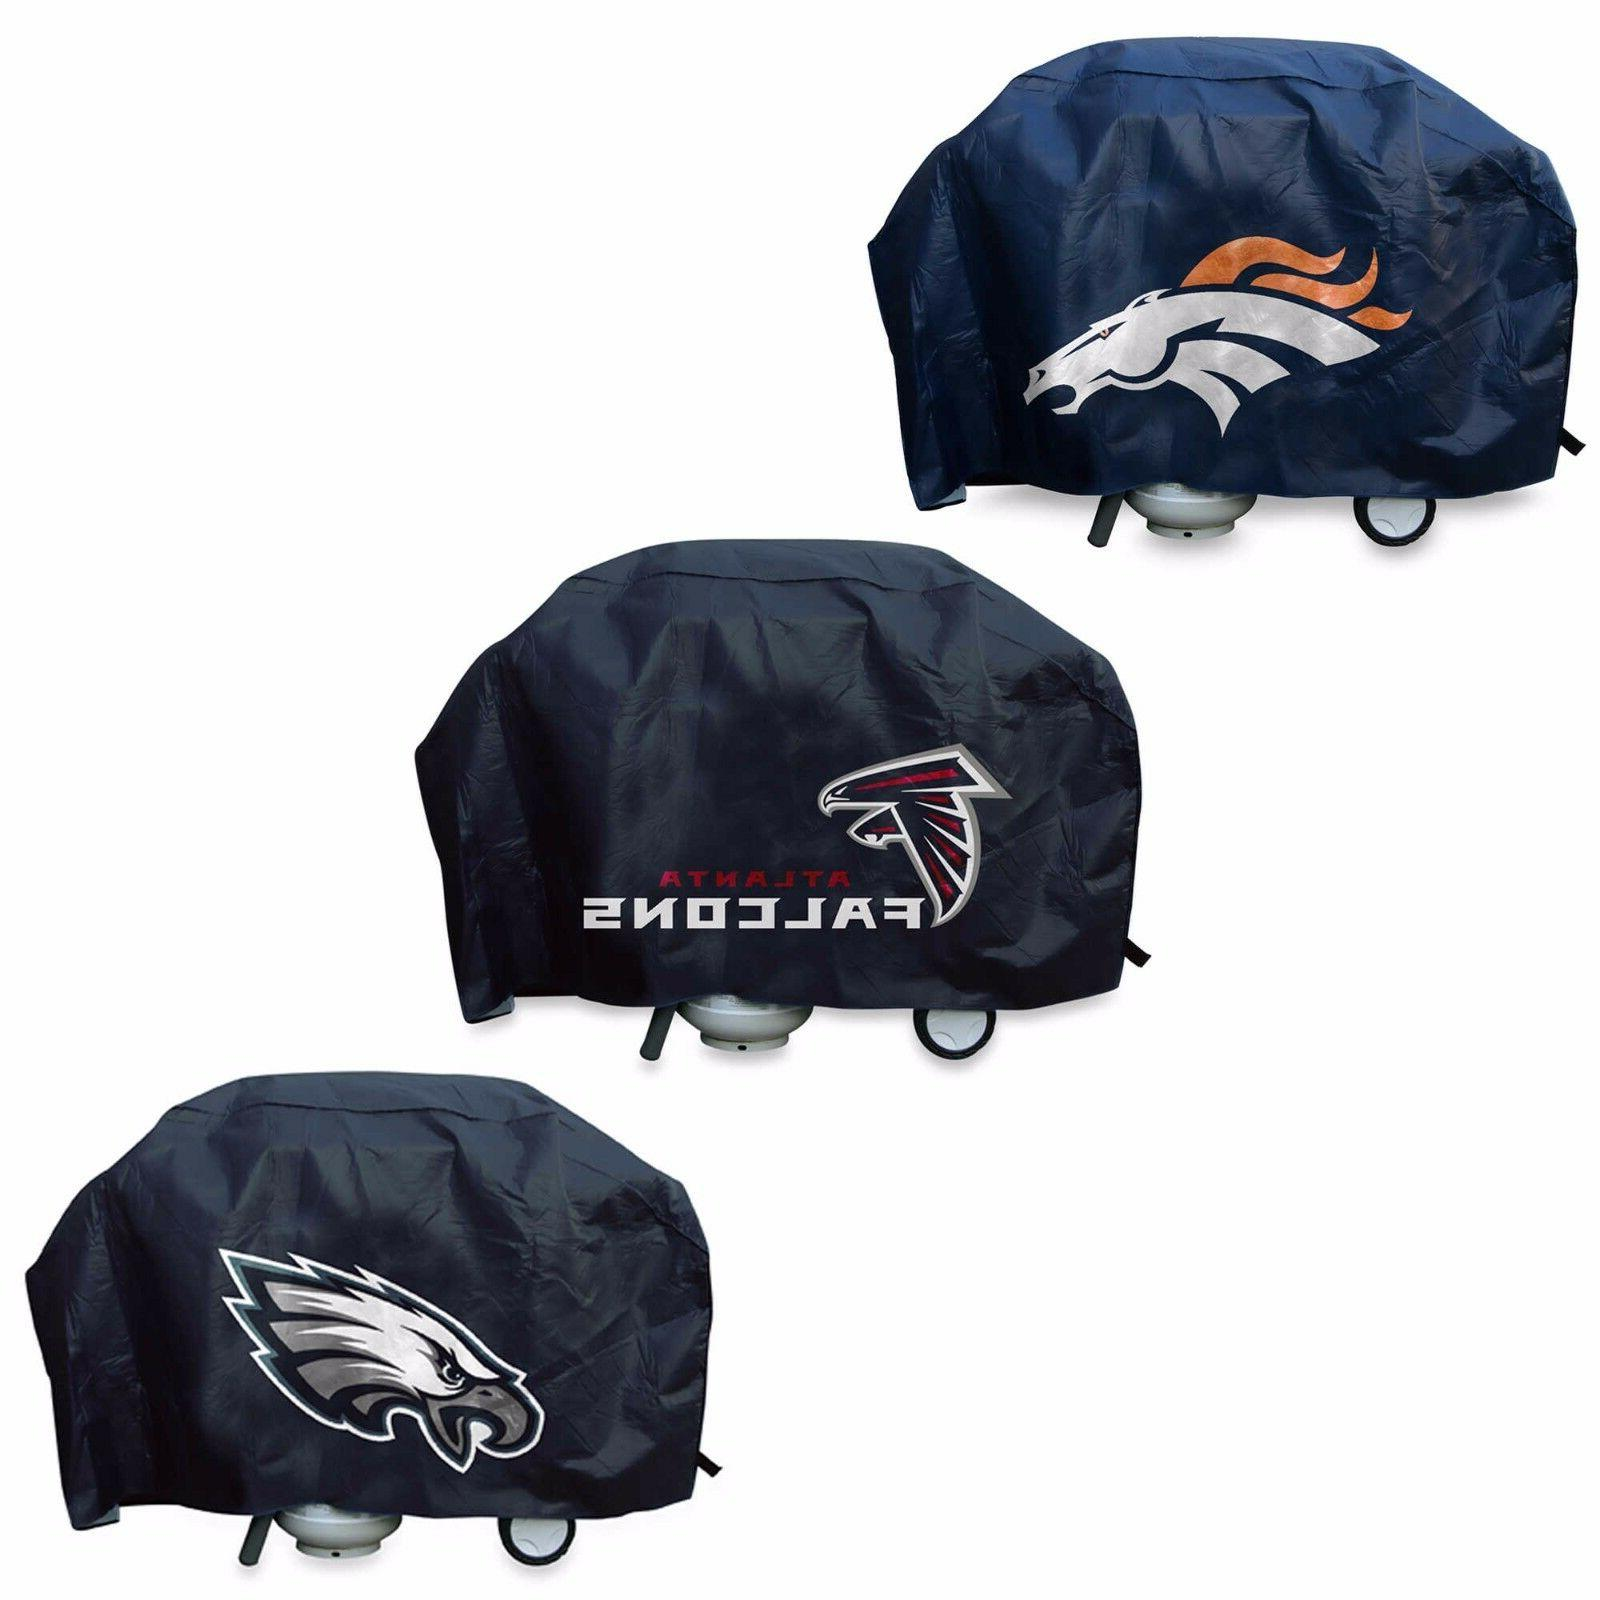 NFL Deluxe Vinyl Padded Grill Cover by Rico Industries -Sele